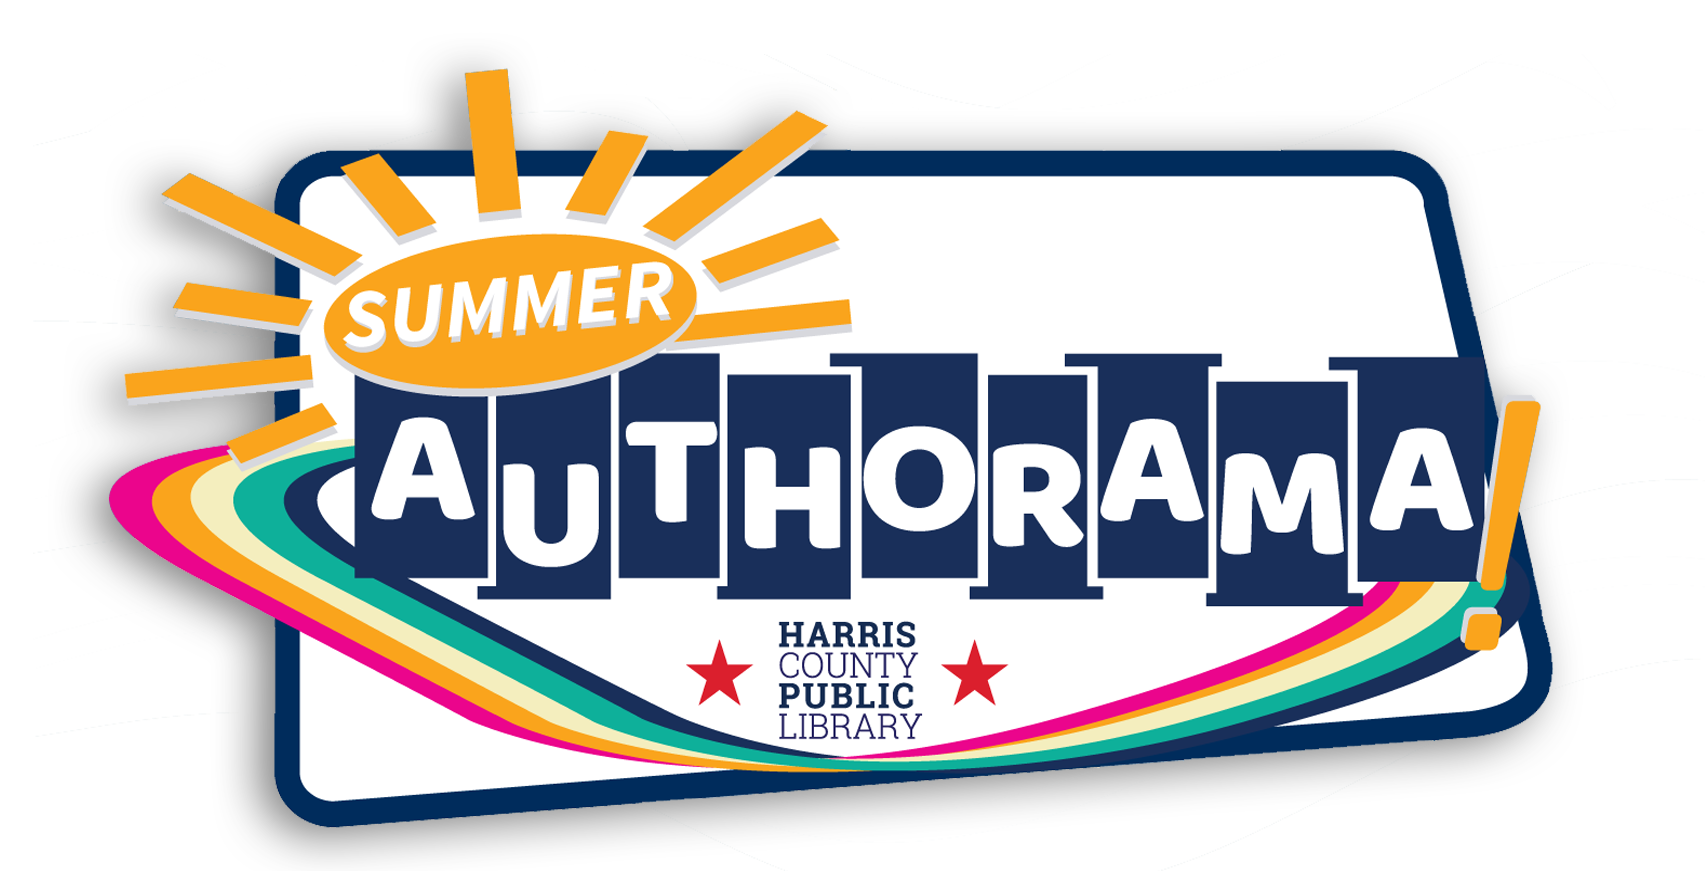 Summer Authorama logo